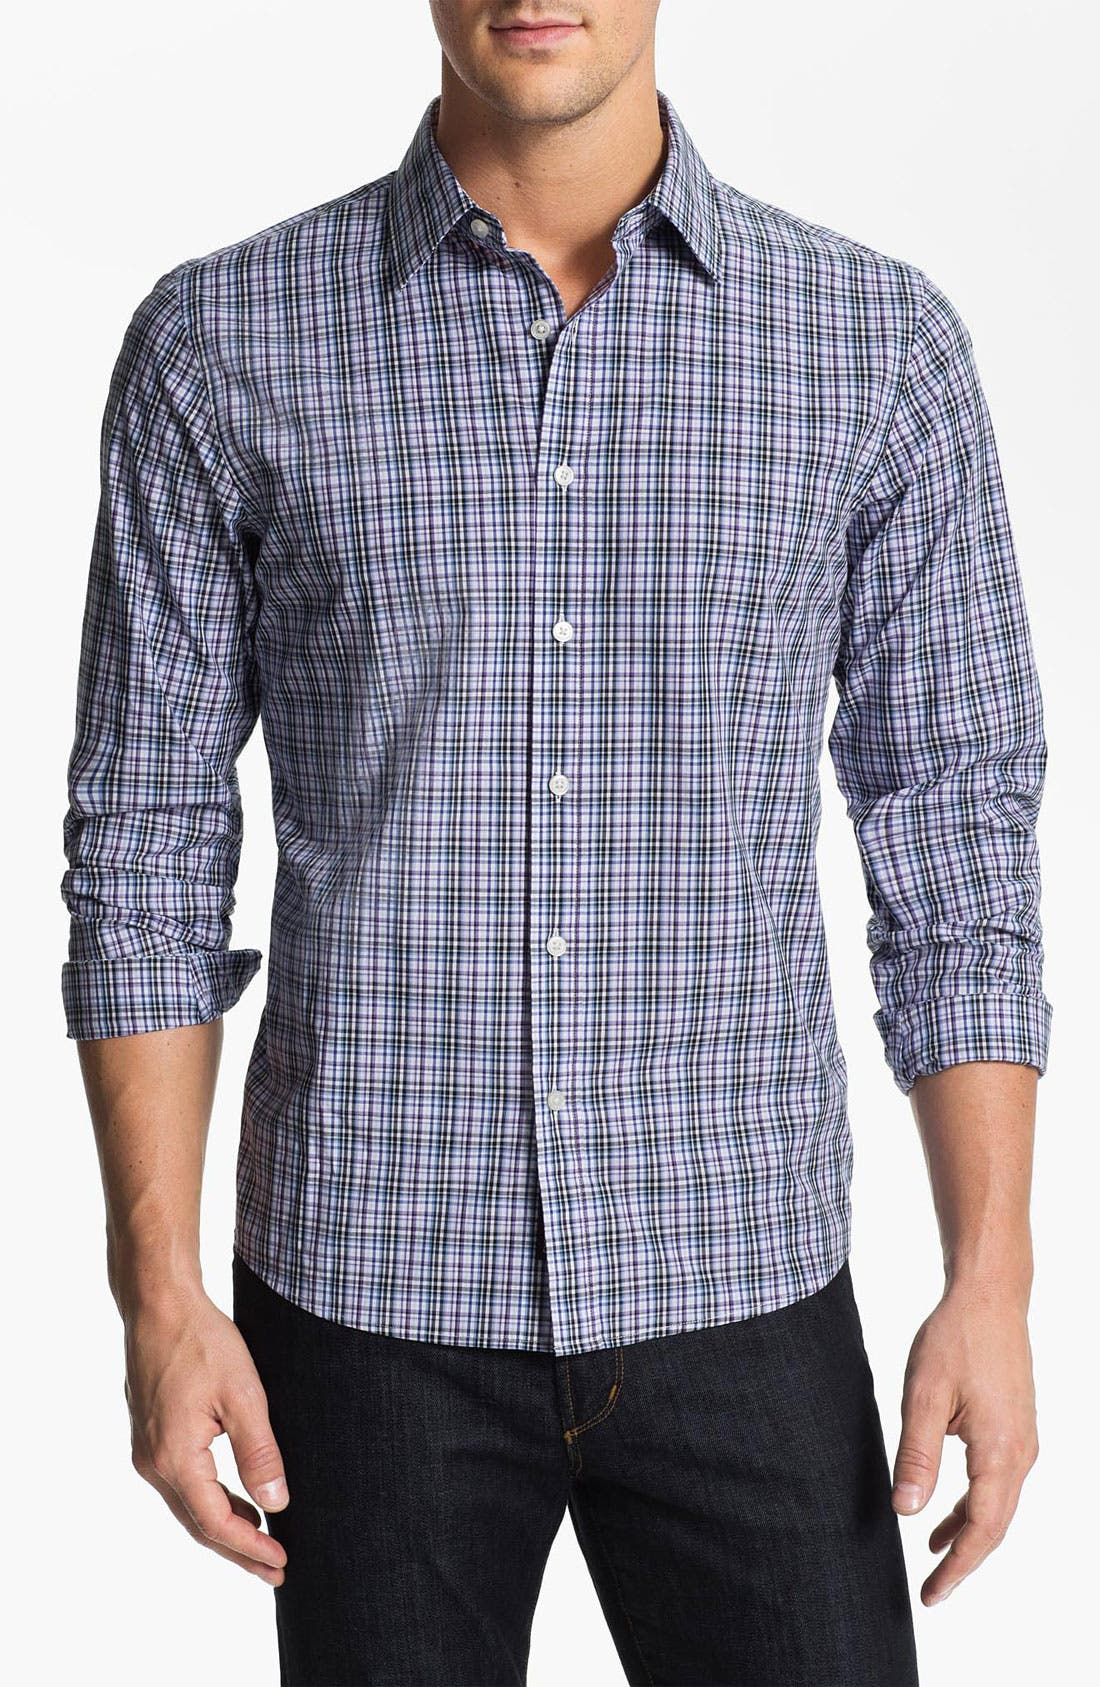 Main Image - Michael Kors 'Morgan Check' Sport Shirt